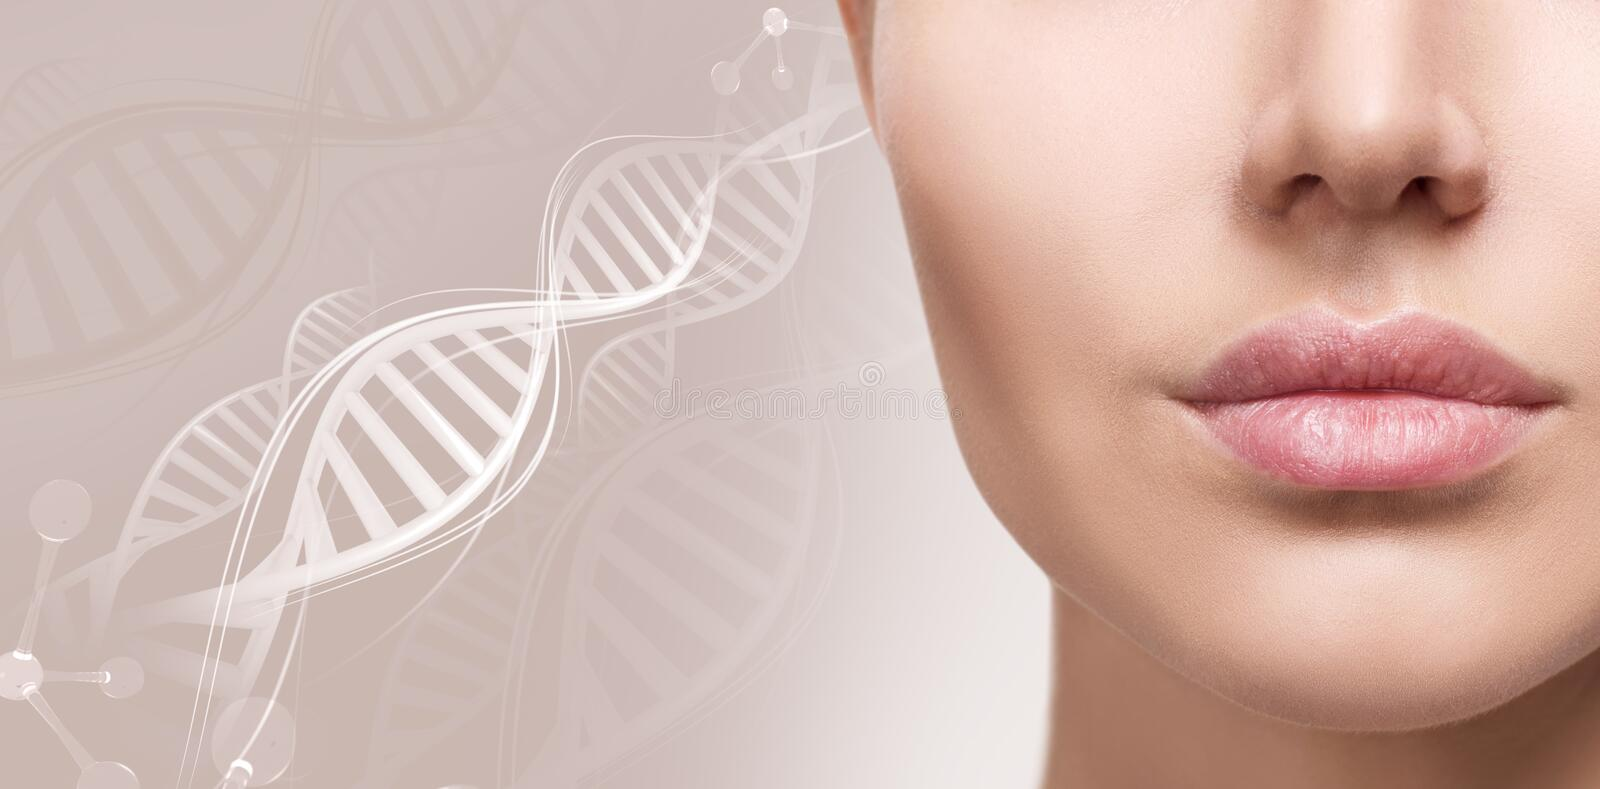 Beautiful plump female lips among DNA chains. Beautiful plump female lips among DNA chains over beige background royalty free stock photo